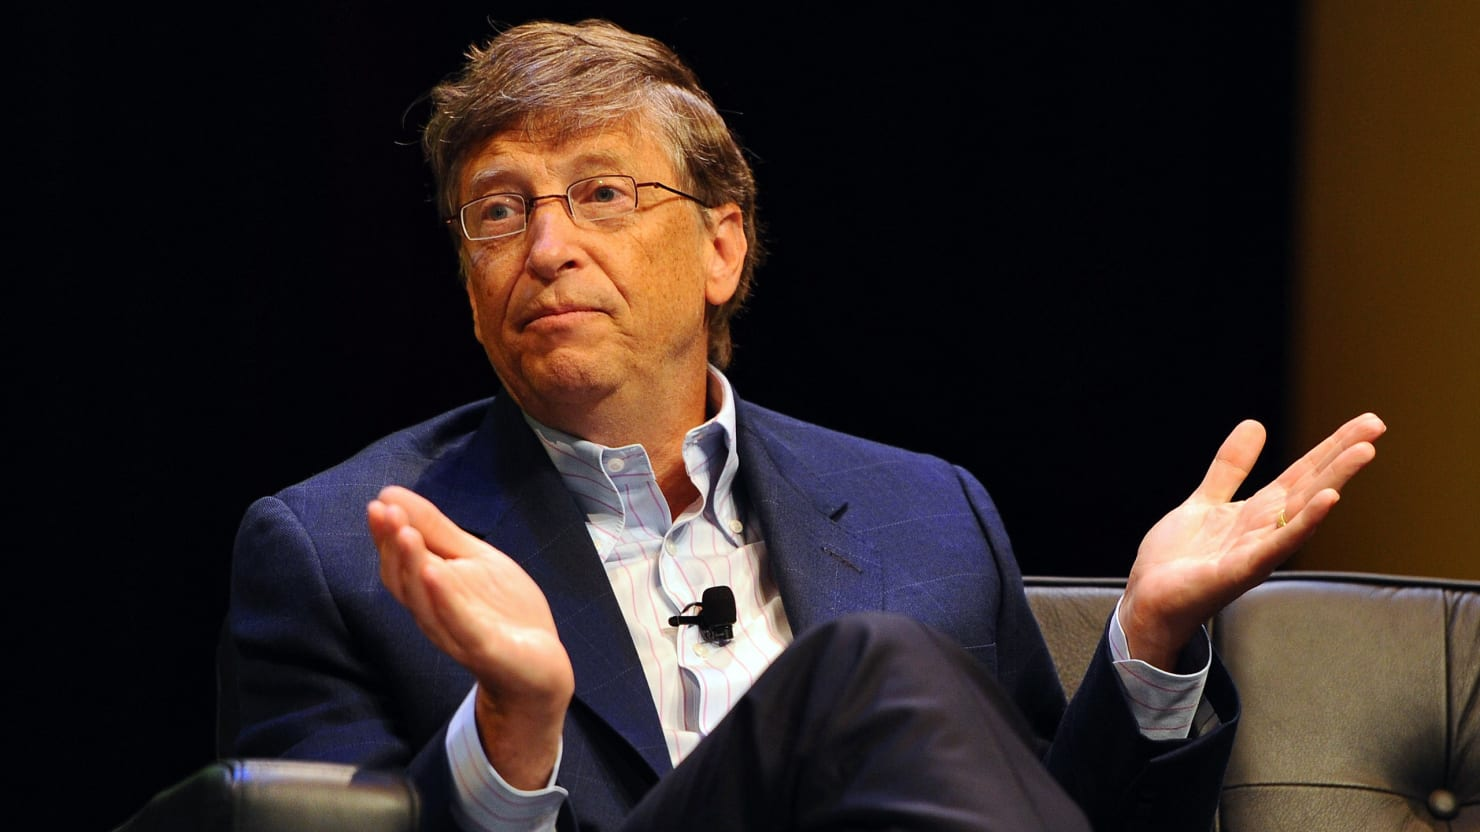 Bill Gates' Internet Doomsday Prophesy Comes True